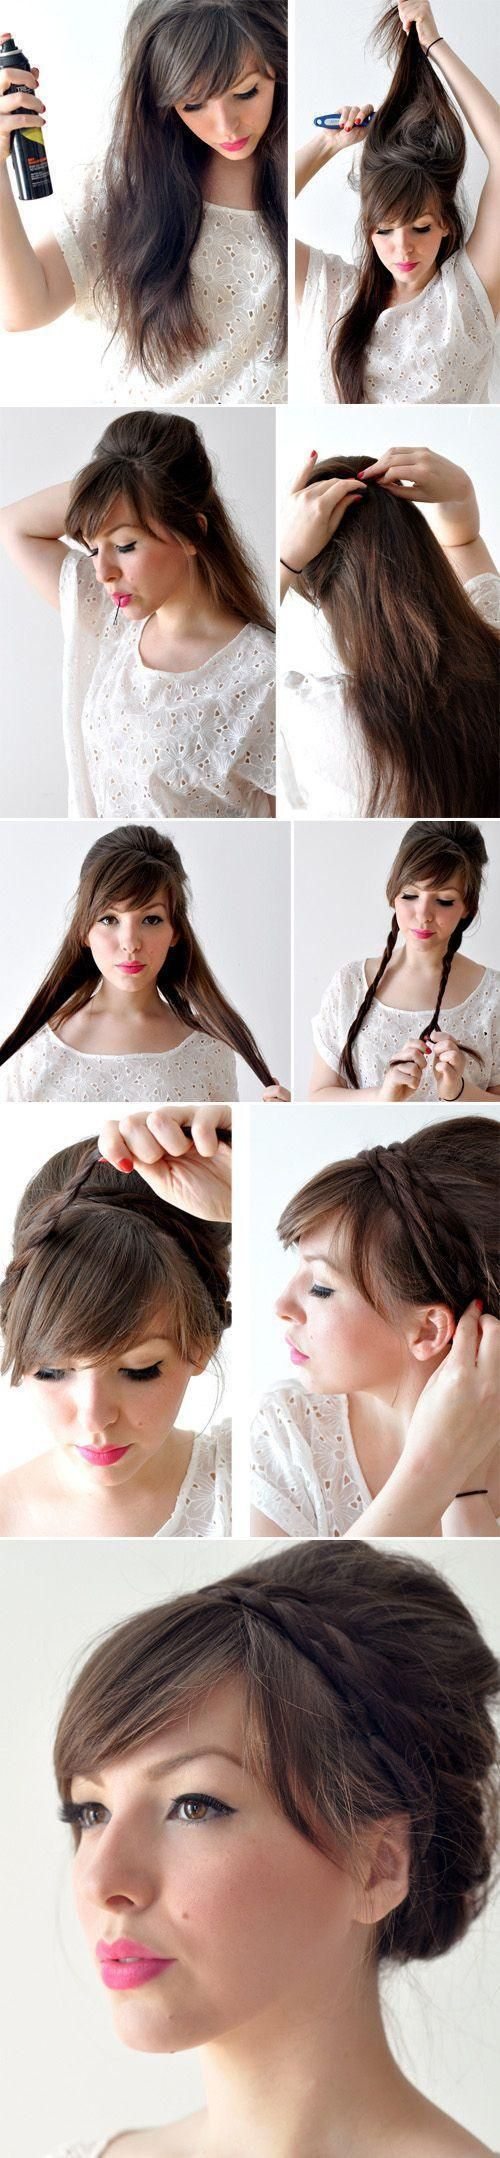 Doityourself hairstyles photos hair style easy and updo